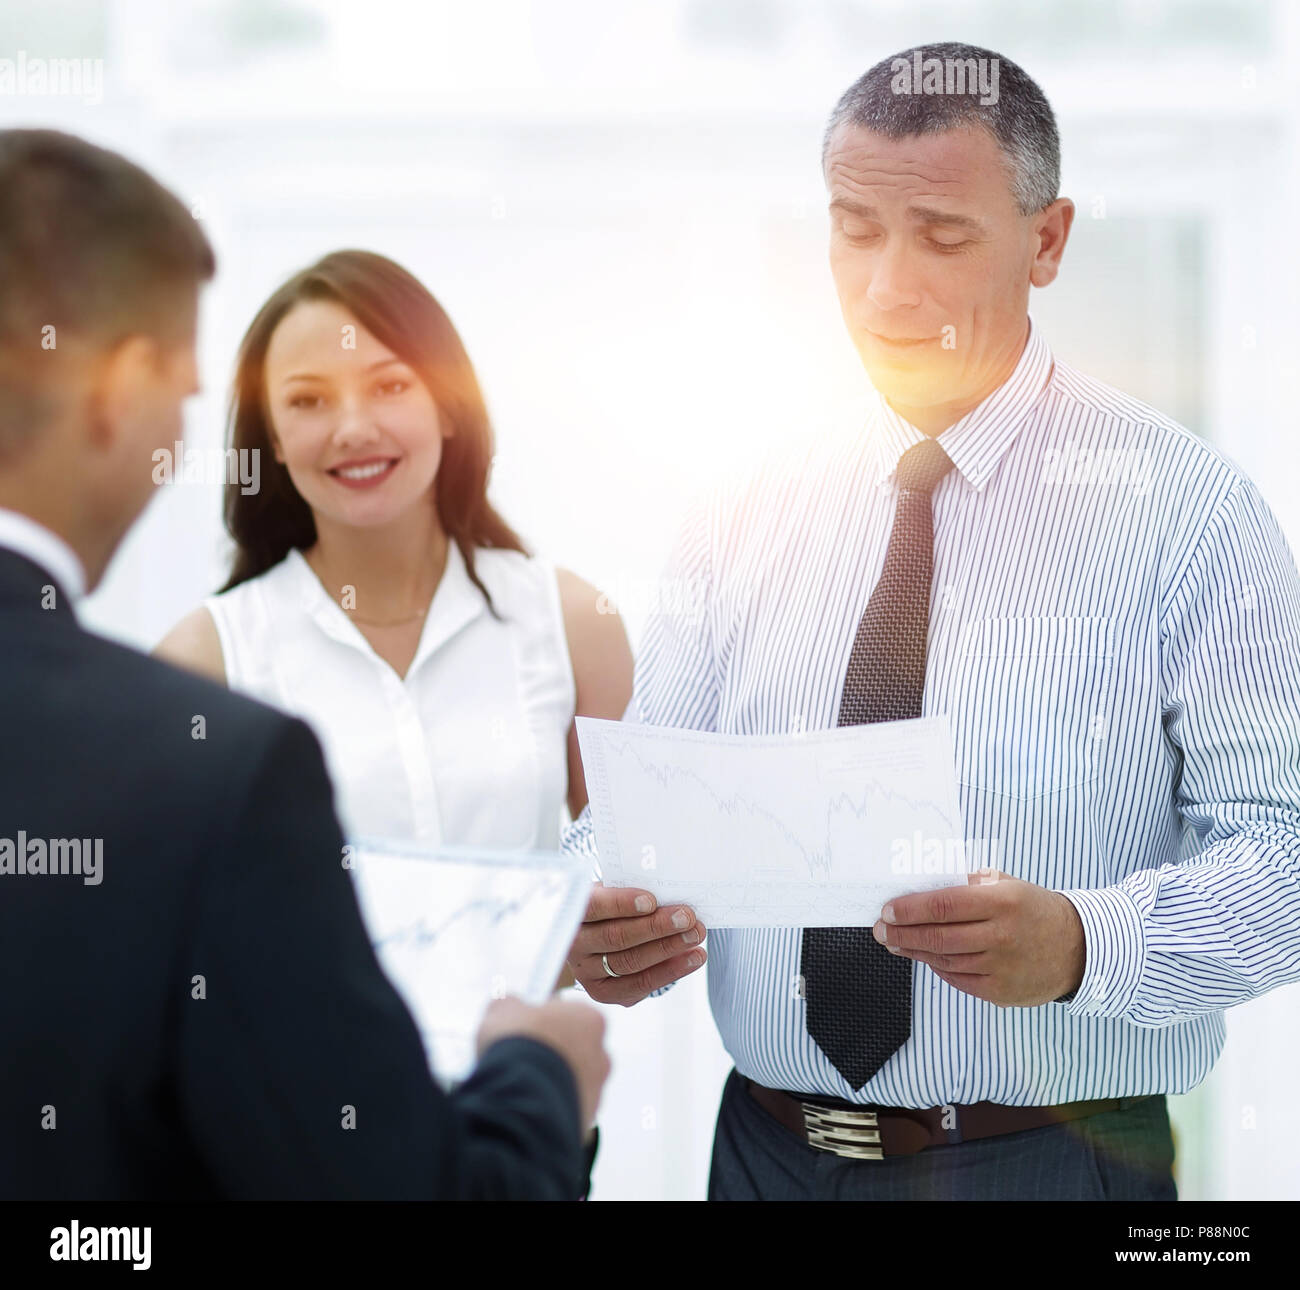 group of business people discussing an important document. - Stock Image